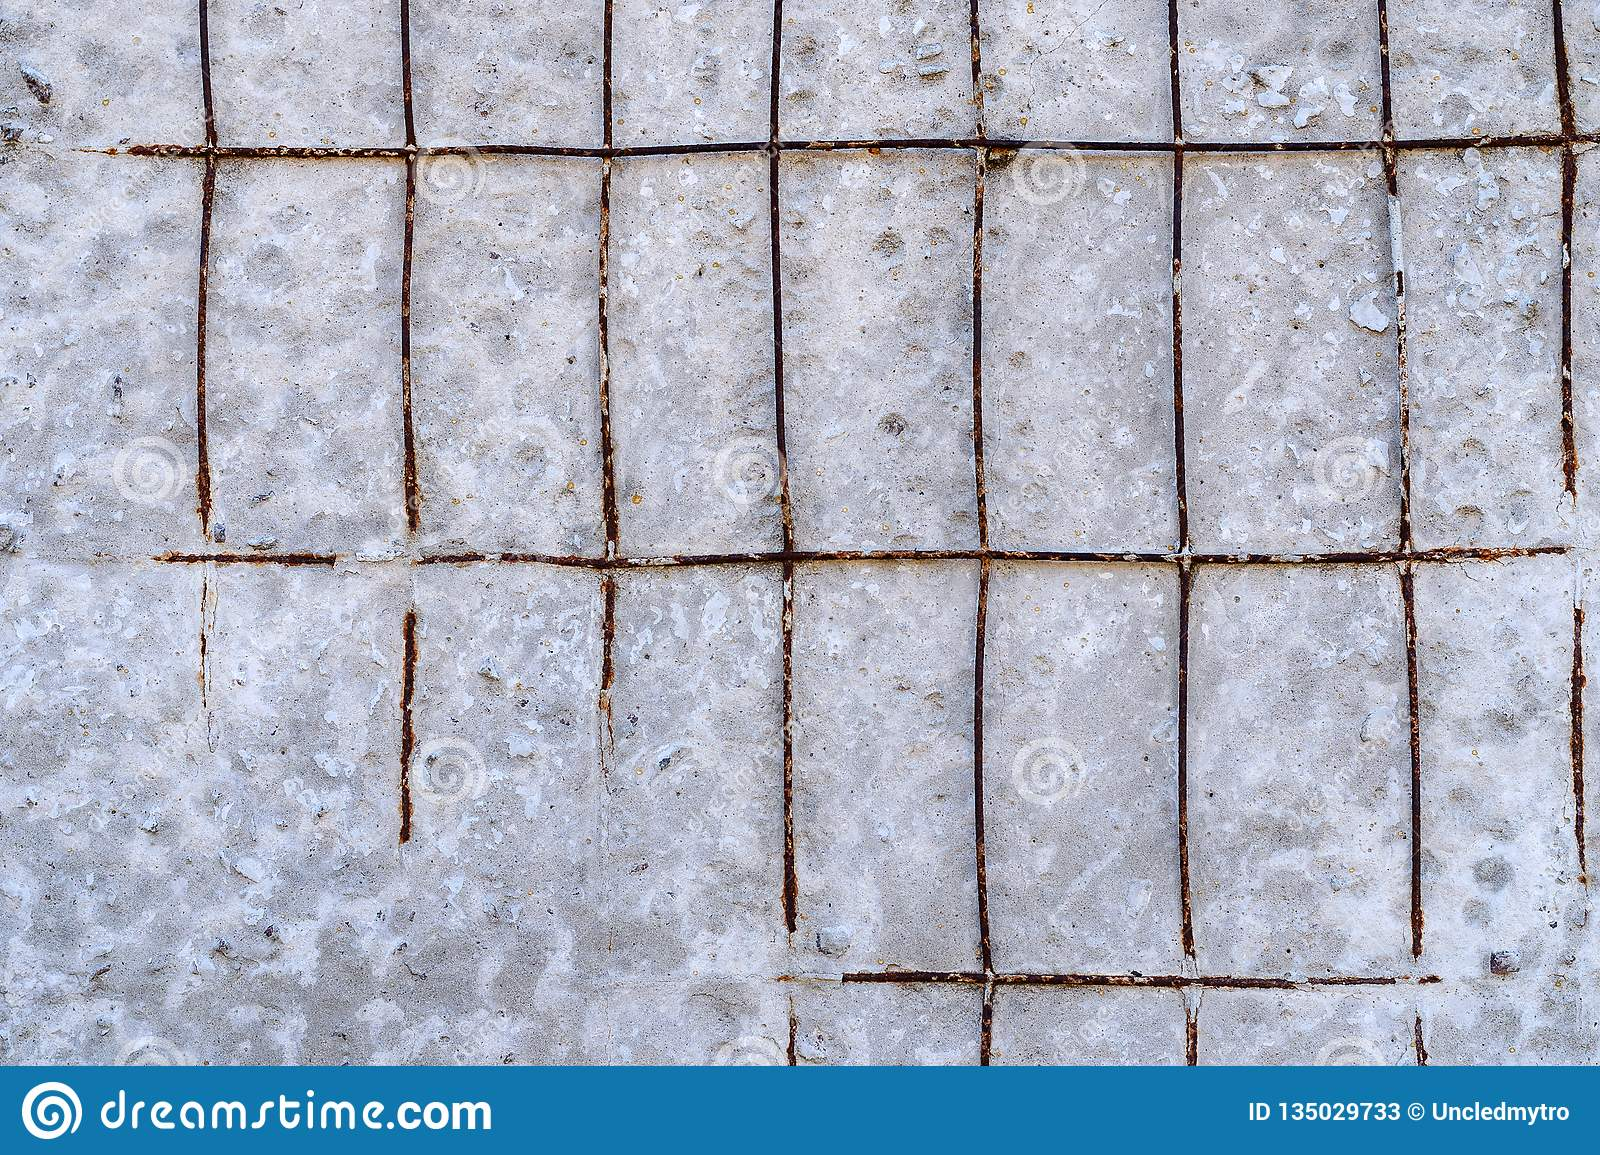 Texture Of Old Cement Or Concrete Wall With Reinforcement Mesh Can Be Used As Background Stock Image Image Of Pattern Gray 135029733